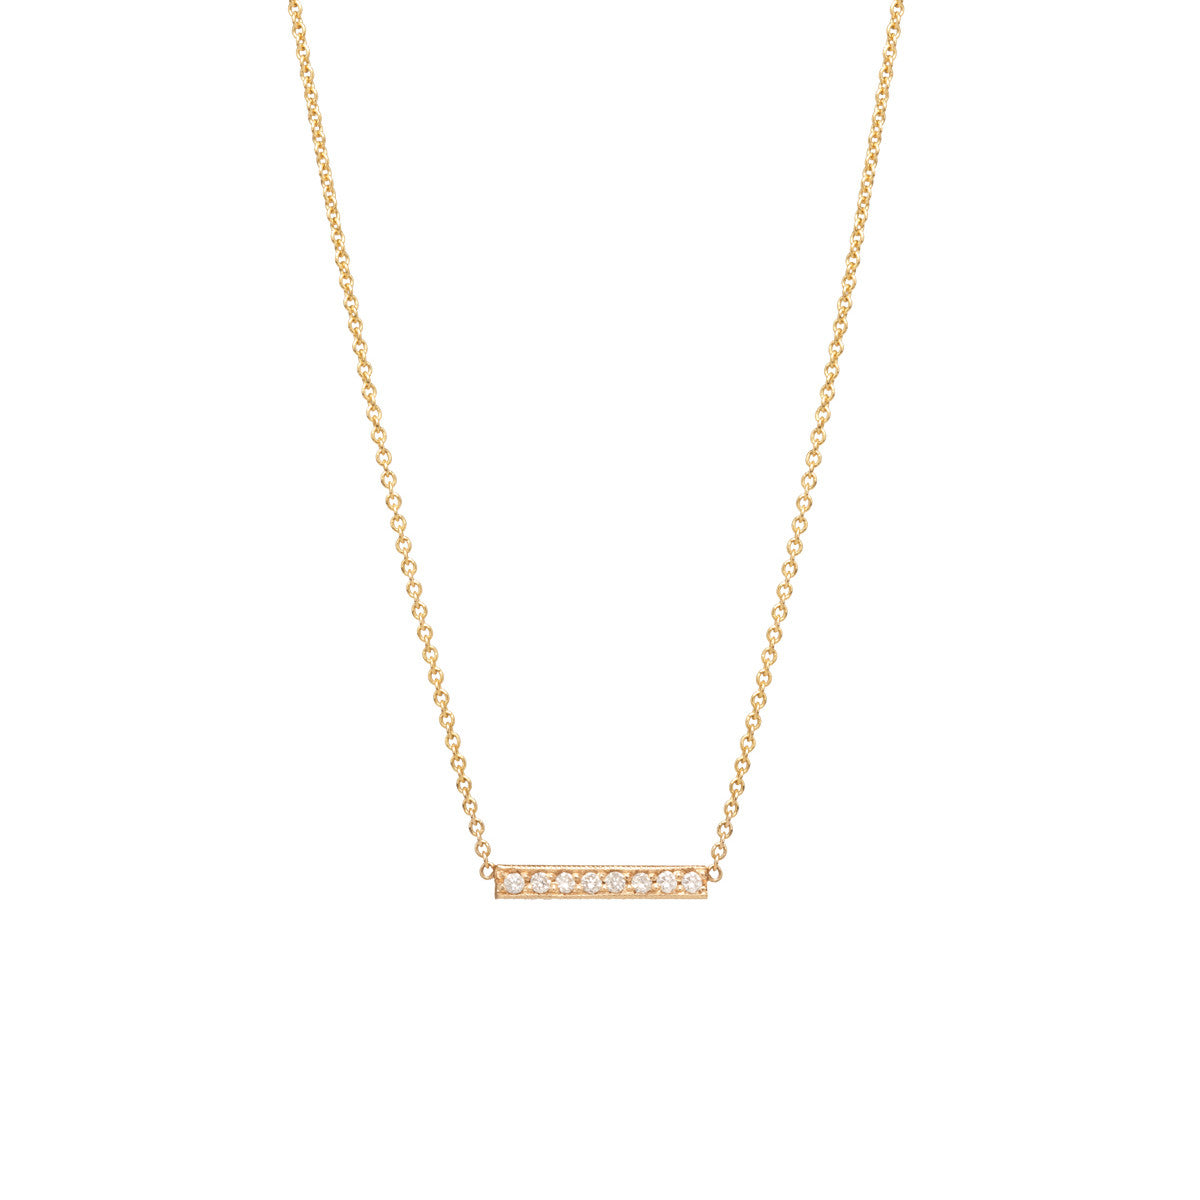 14k short pave bar necklace